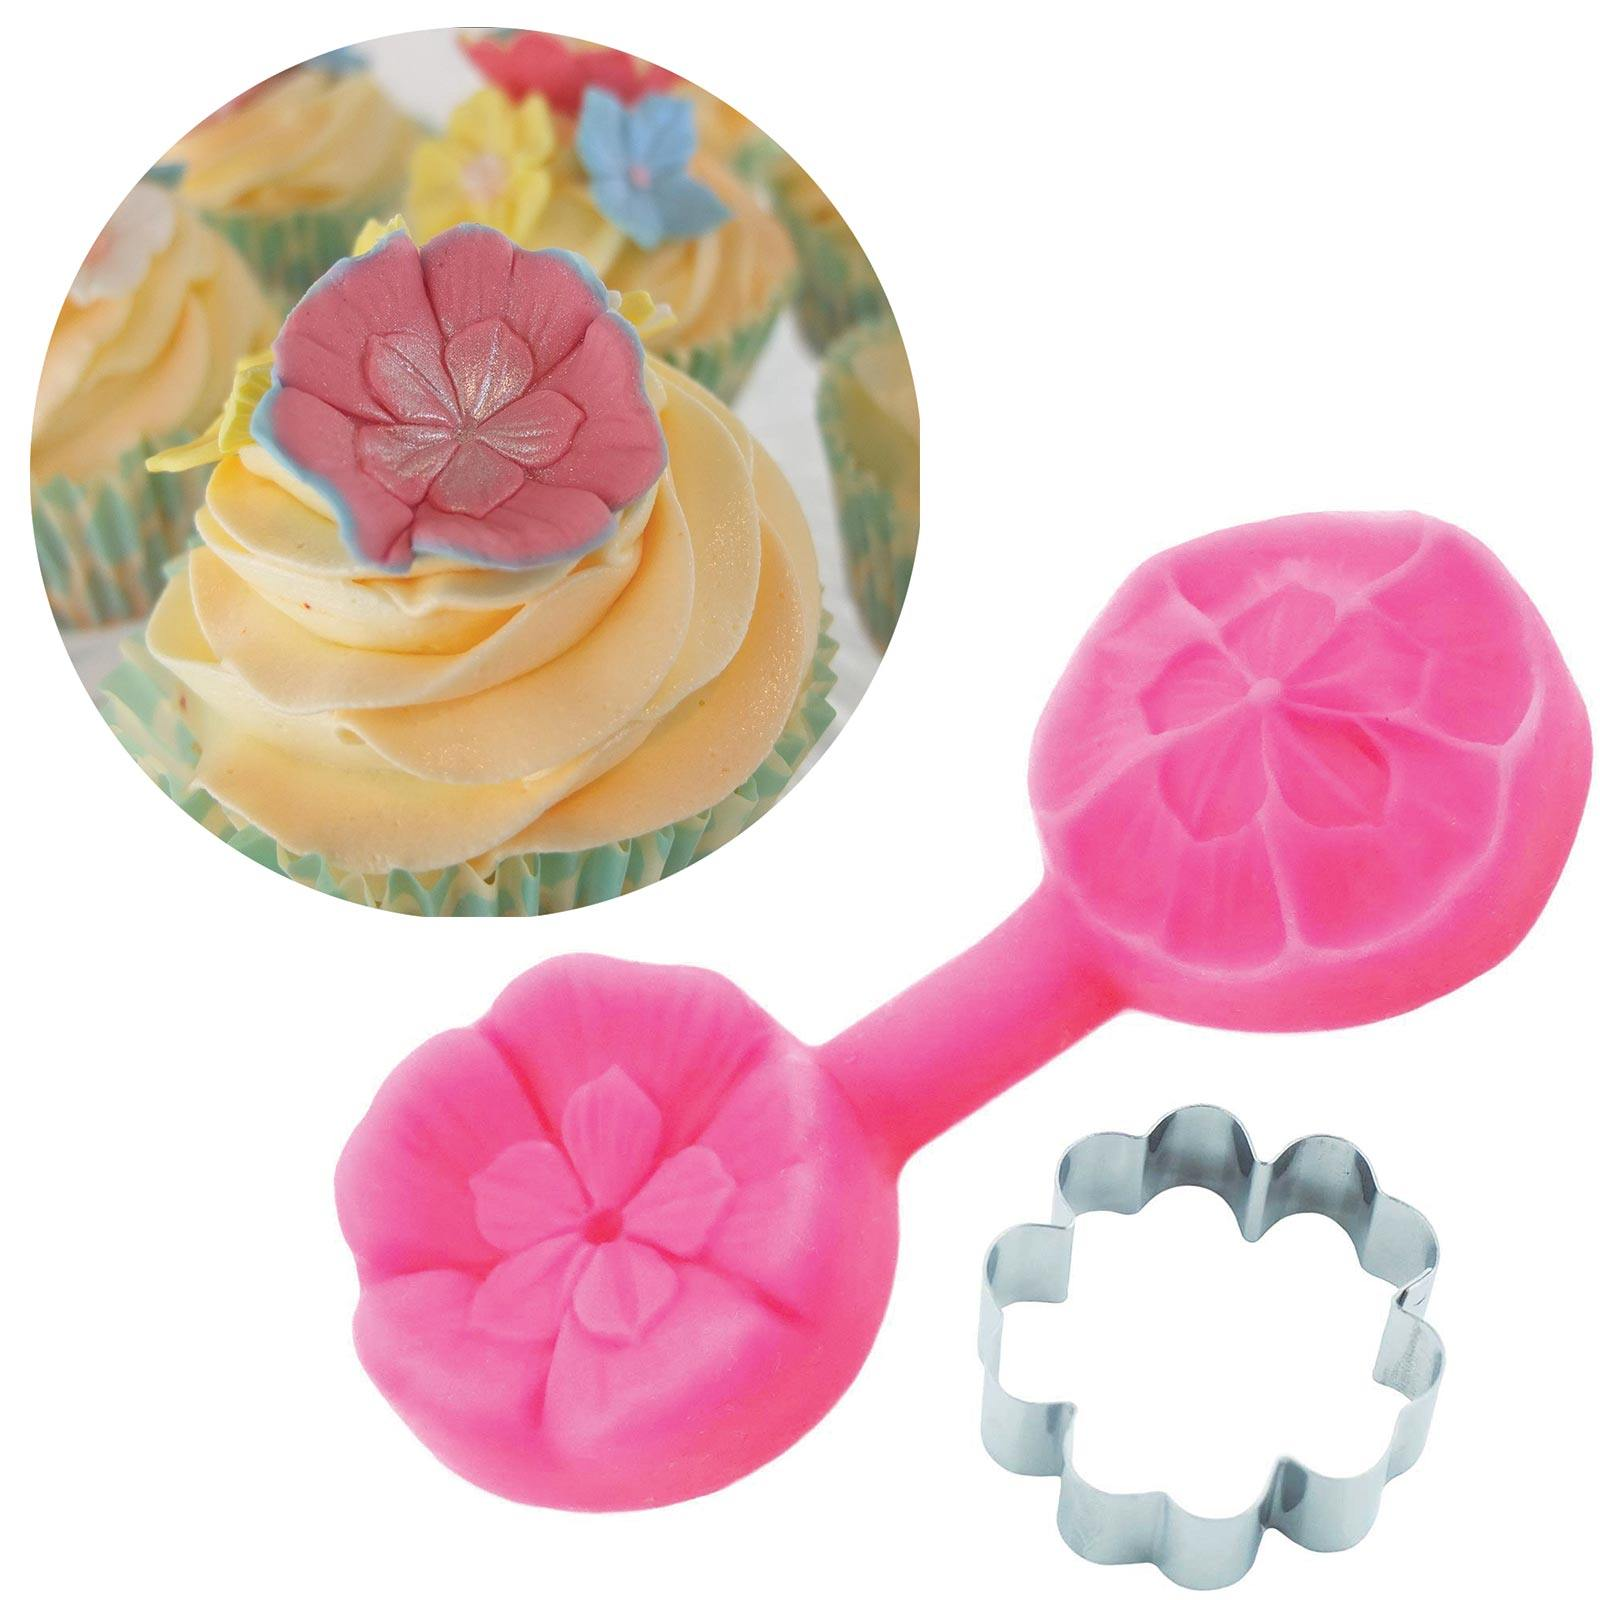 Primula Cutter & Mould Set - Blossom Sugar Art cake_decorating_mold craft_mold icing_flowers